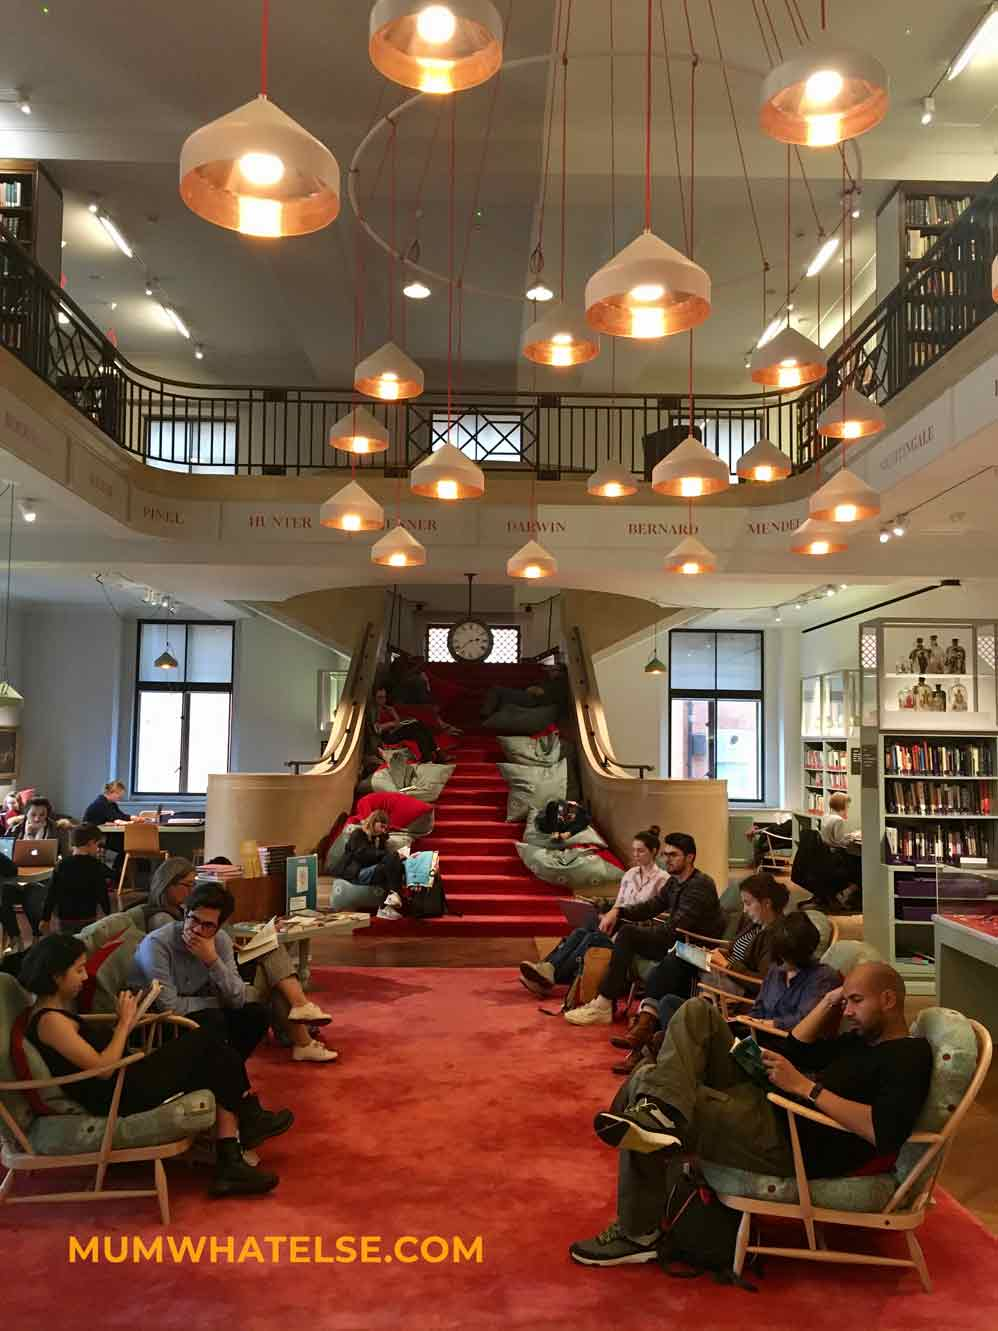 a reading room with people reading and the red floor